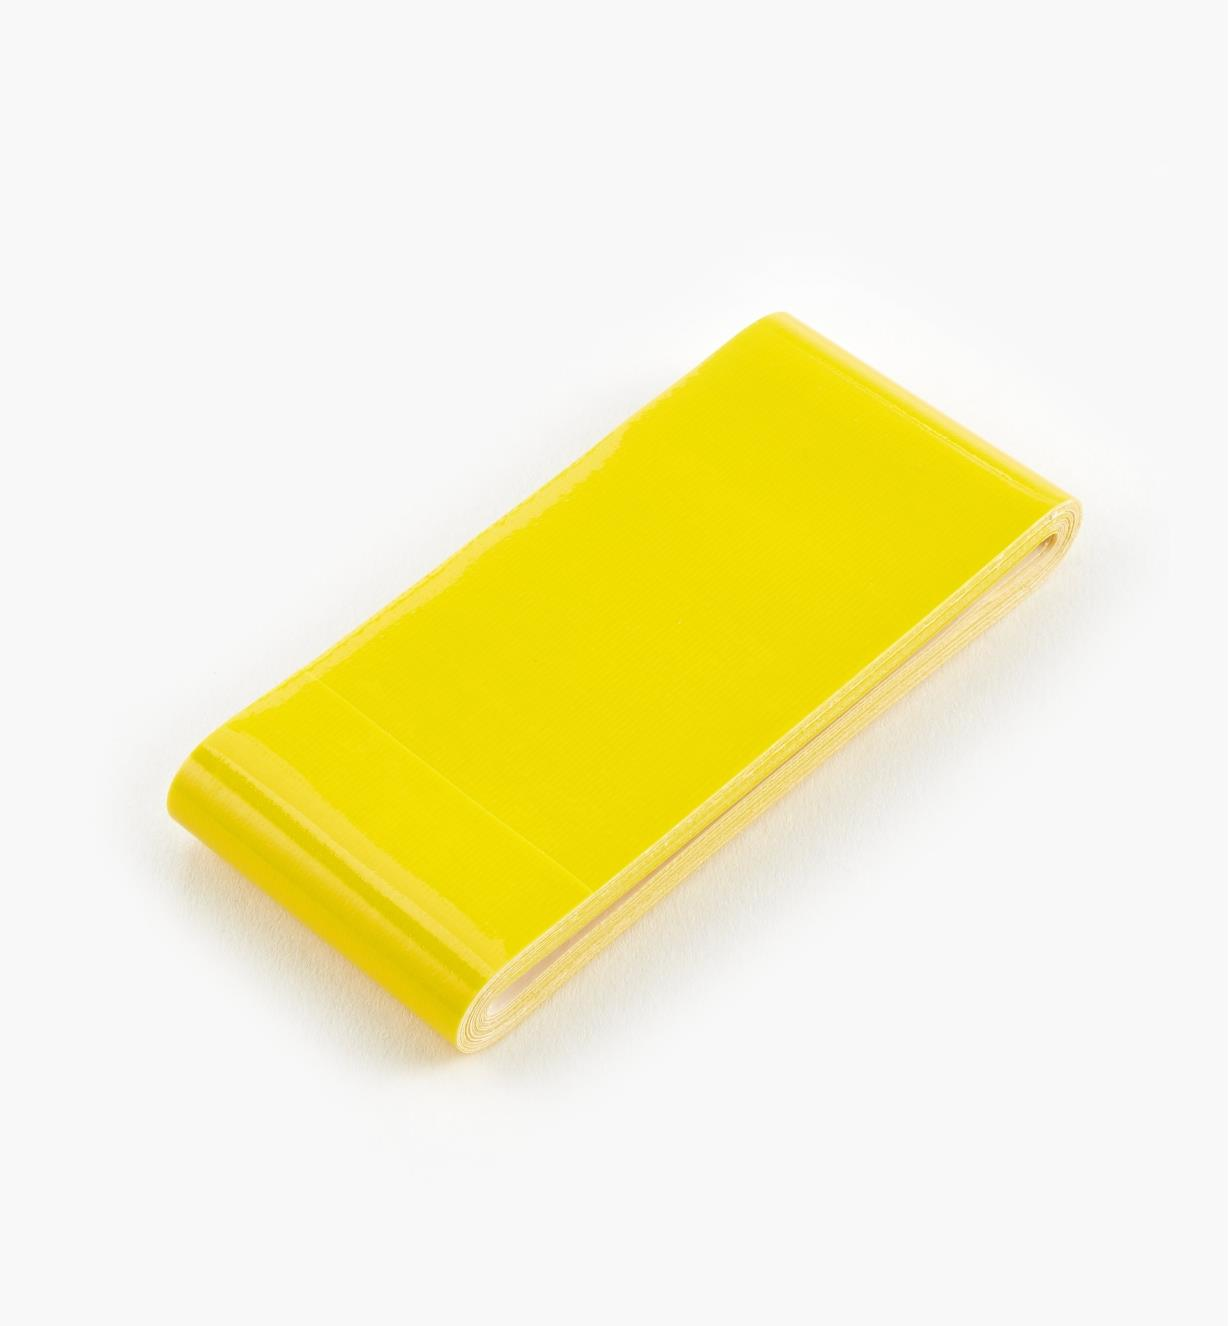 25U0625Y - Yellow Pocket Duct Tape, 5 yd.